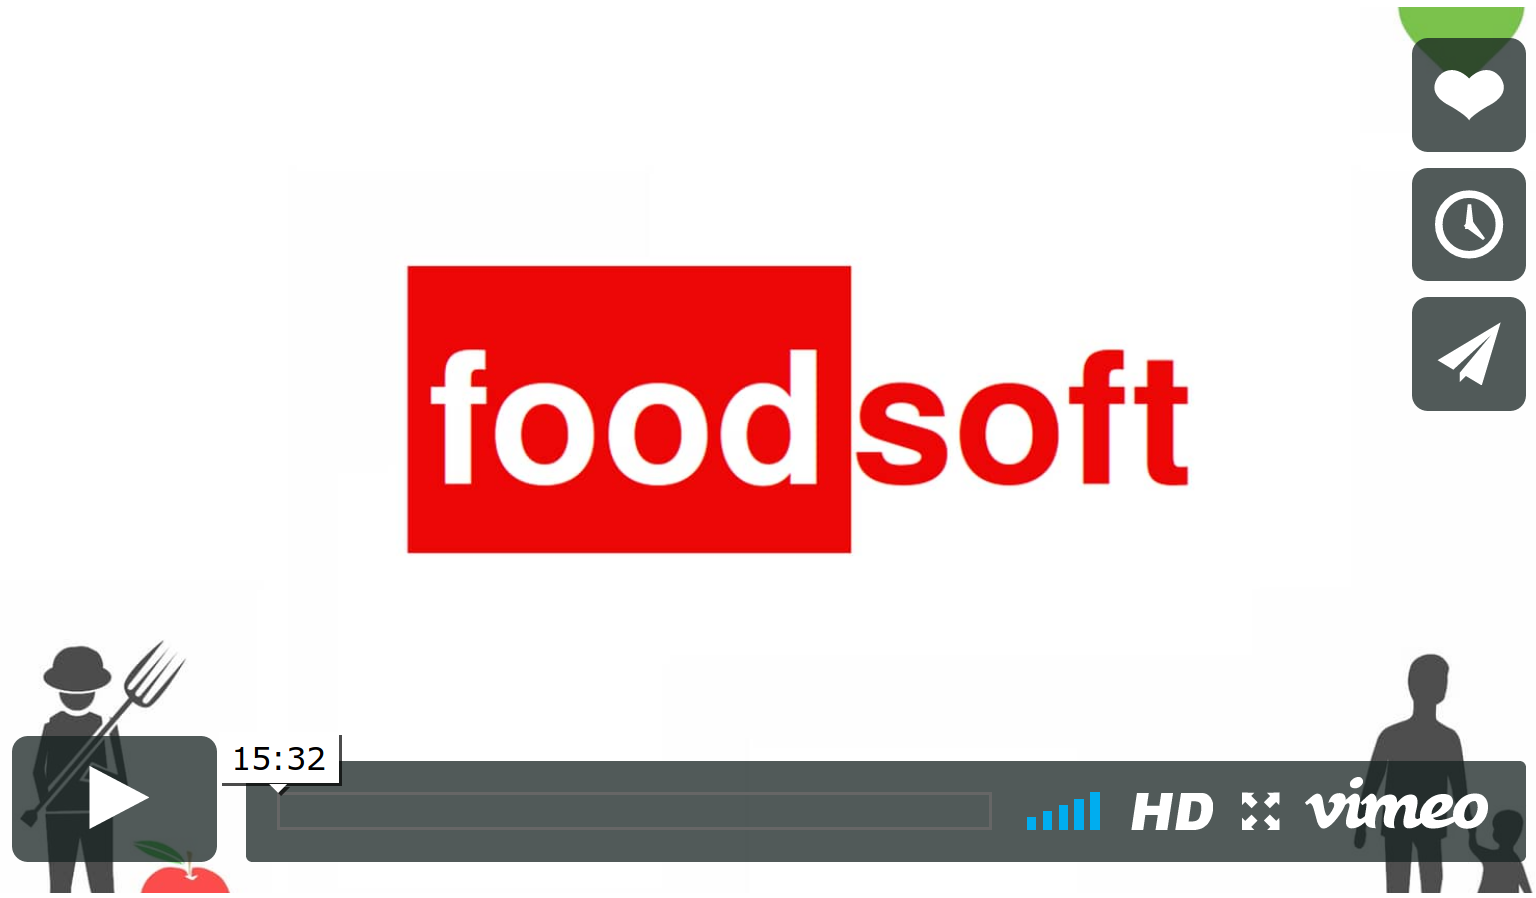 Foodsoft introduction video